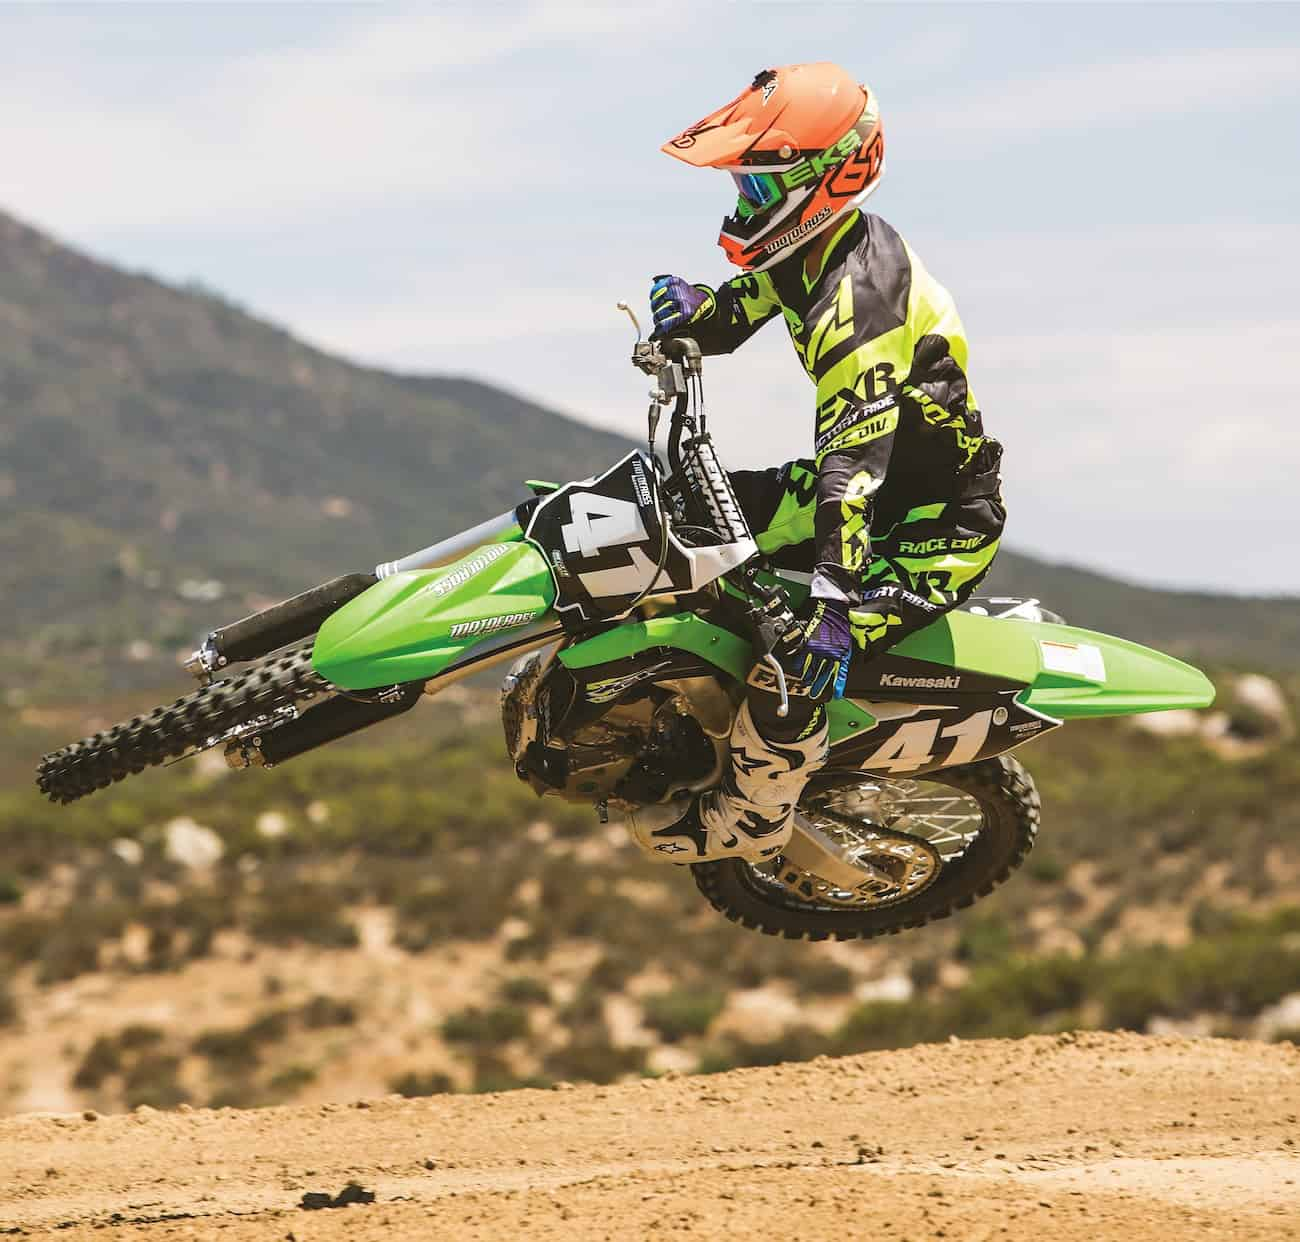 Mxa Motocross Race Test 2018 Kawasaki Kx250f Action 2009 Service Manual Basic Instruction This Chassis With The Old Engine Would Be An Awesome Bike Mxas